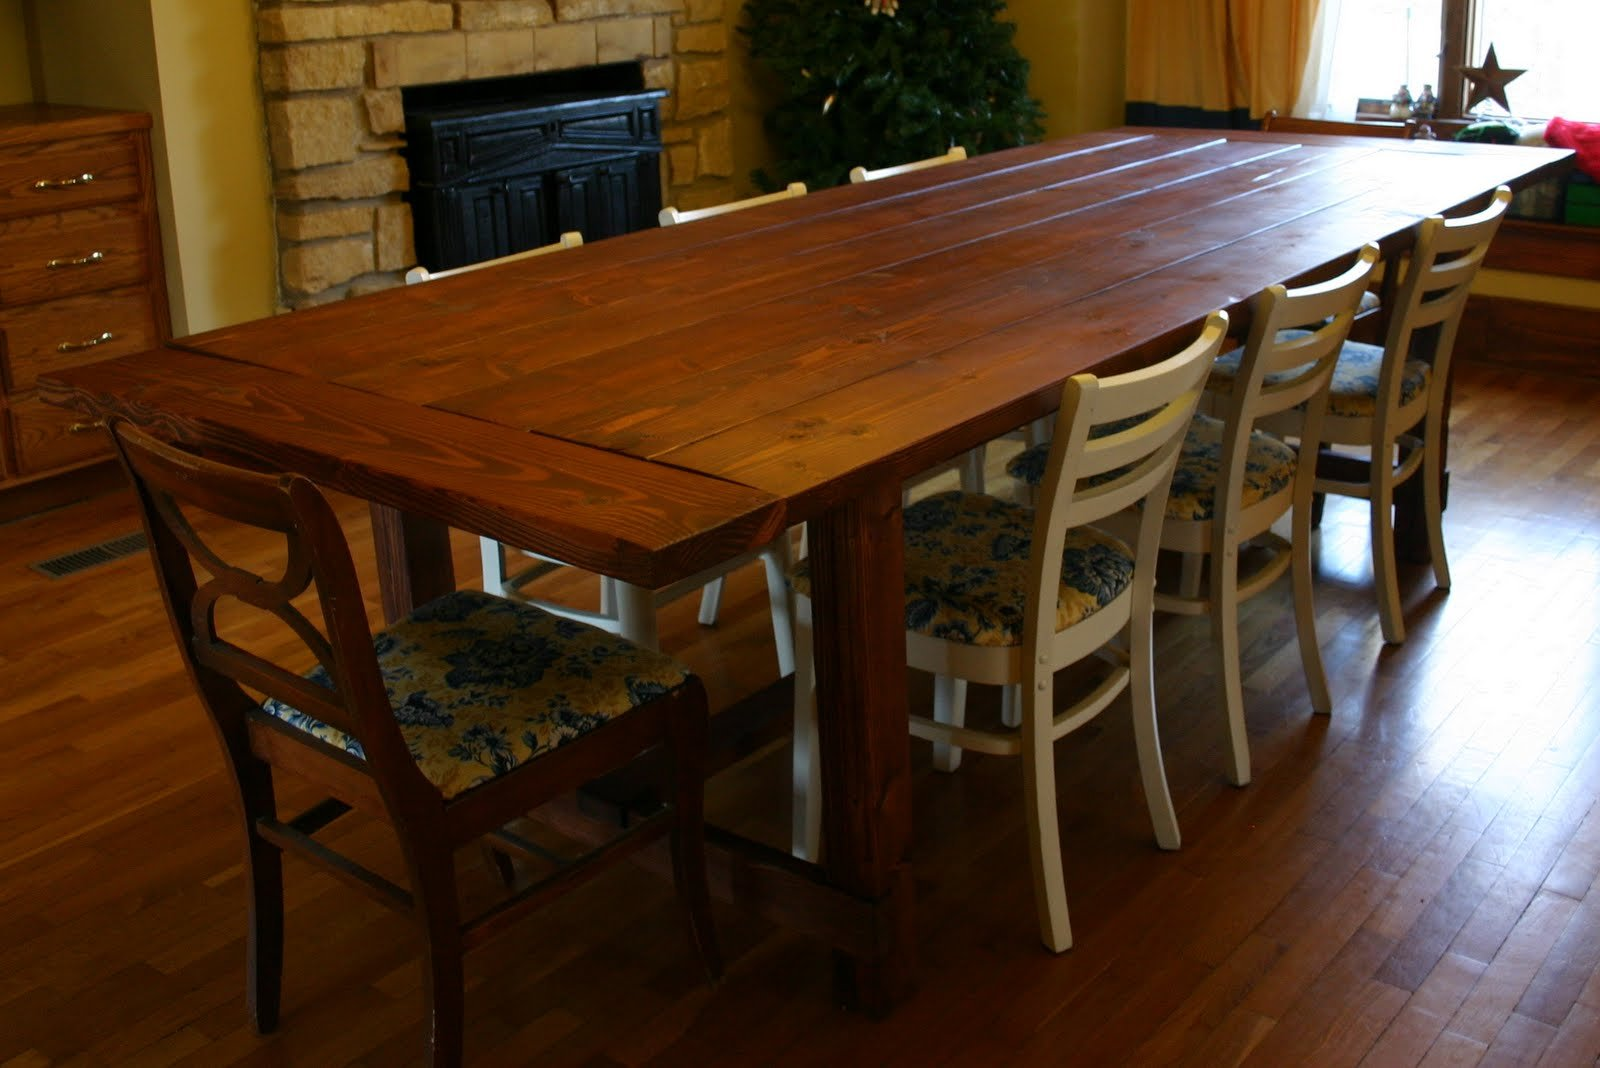 woodworking building plans dining room table pdf free download